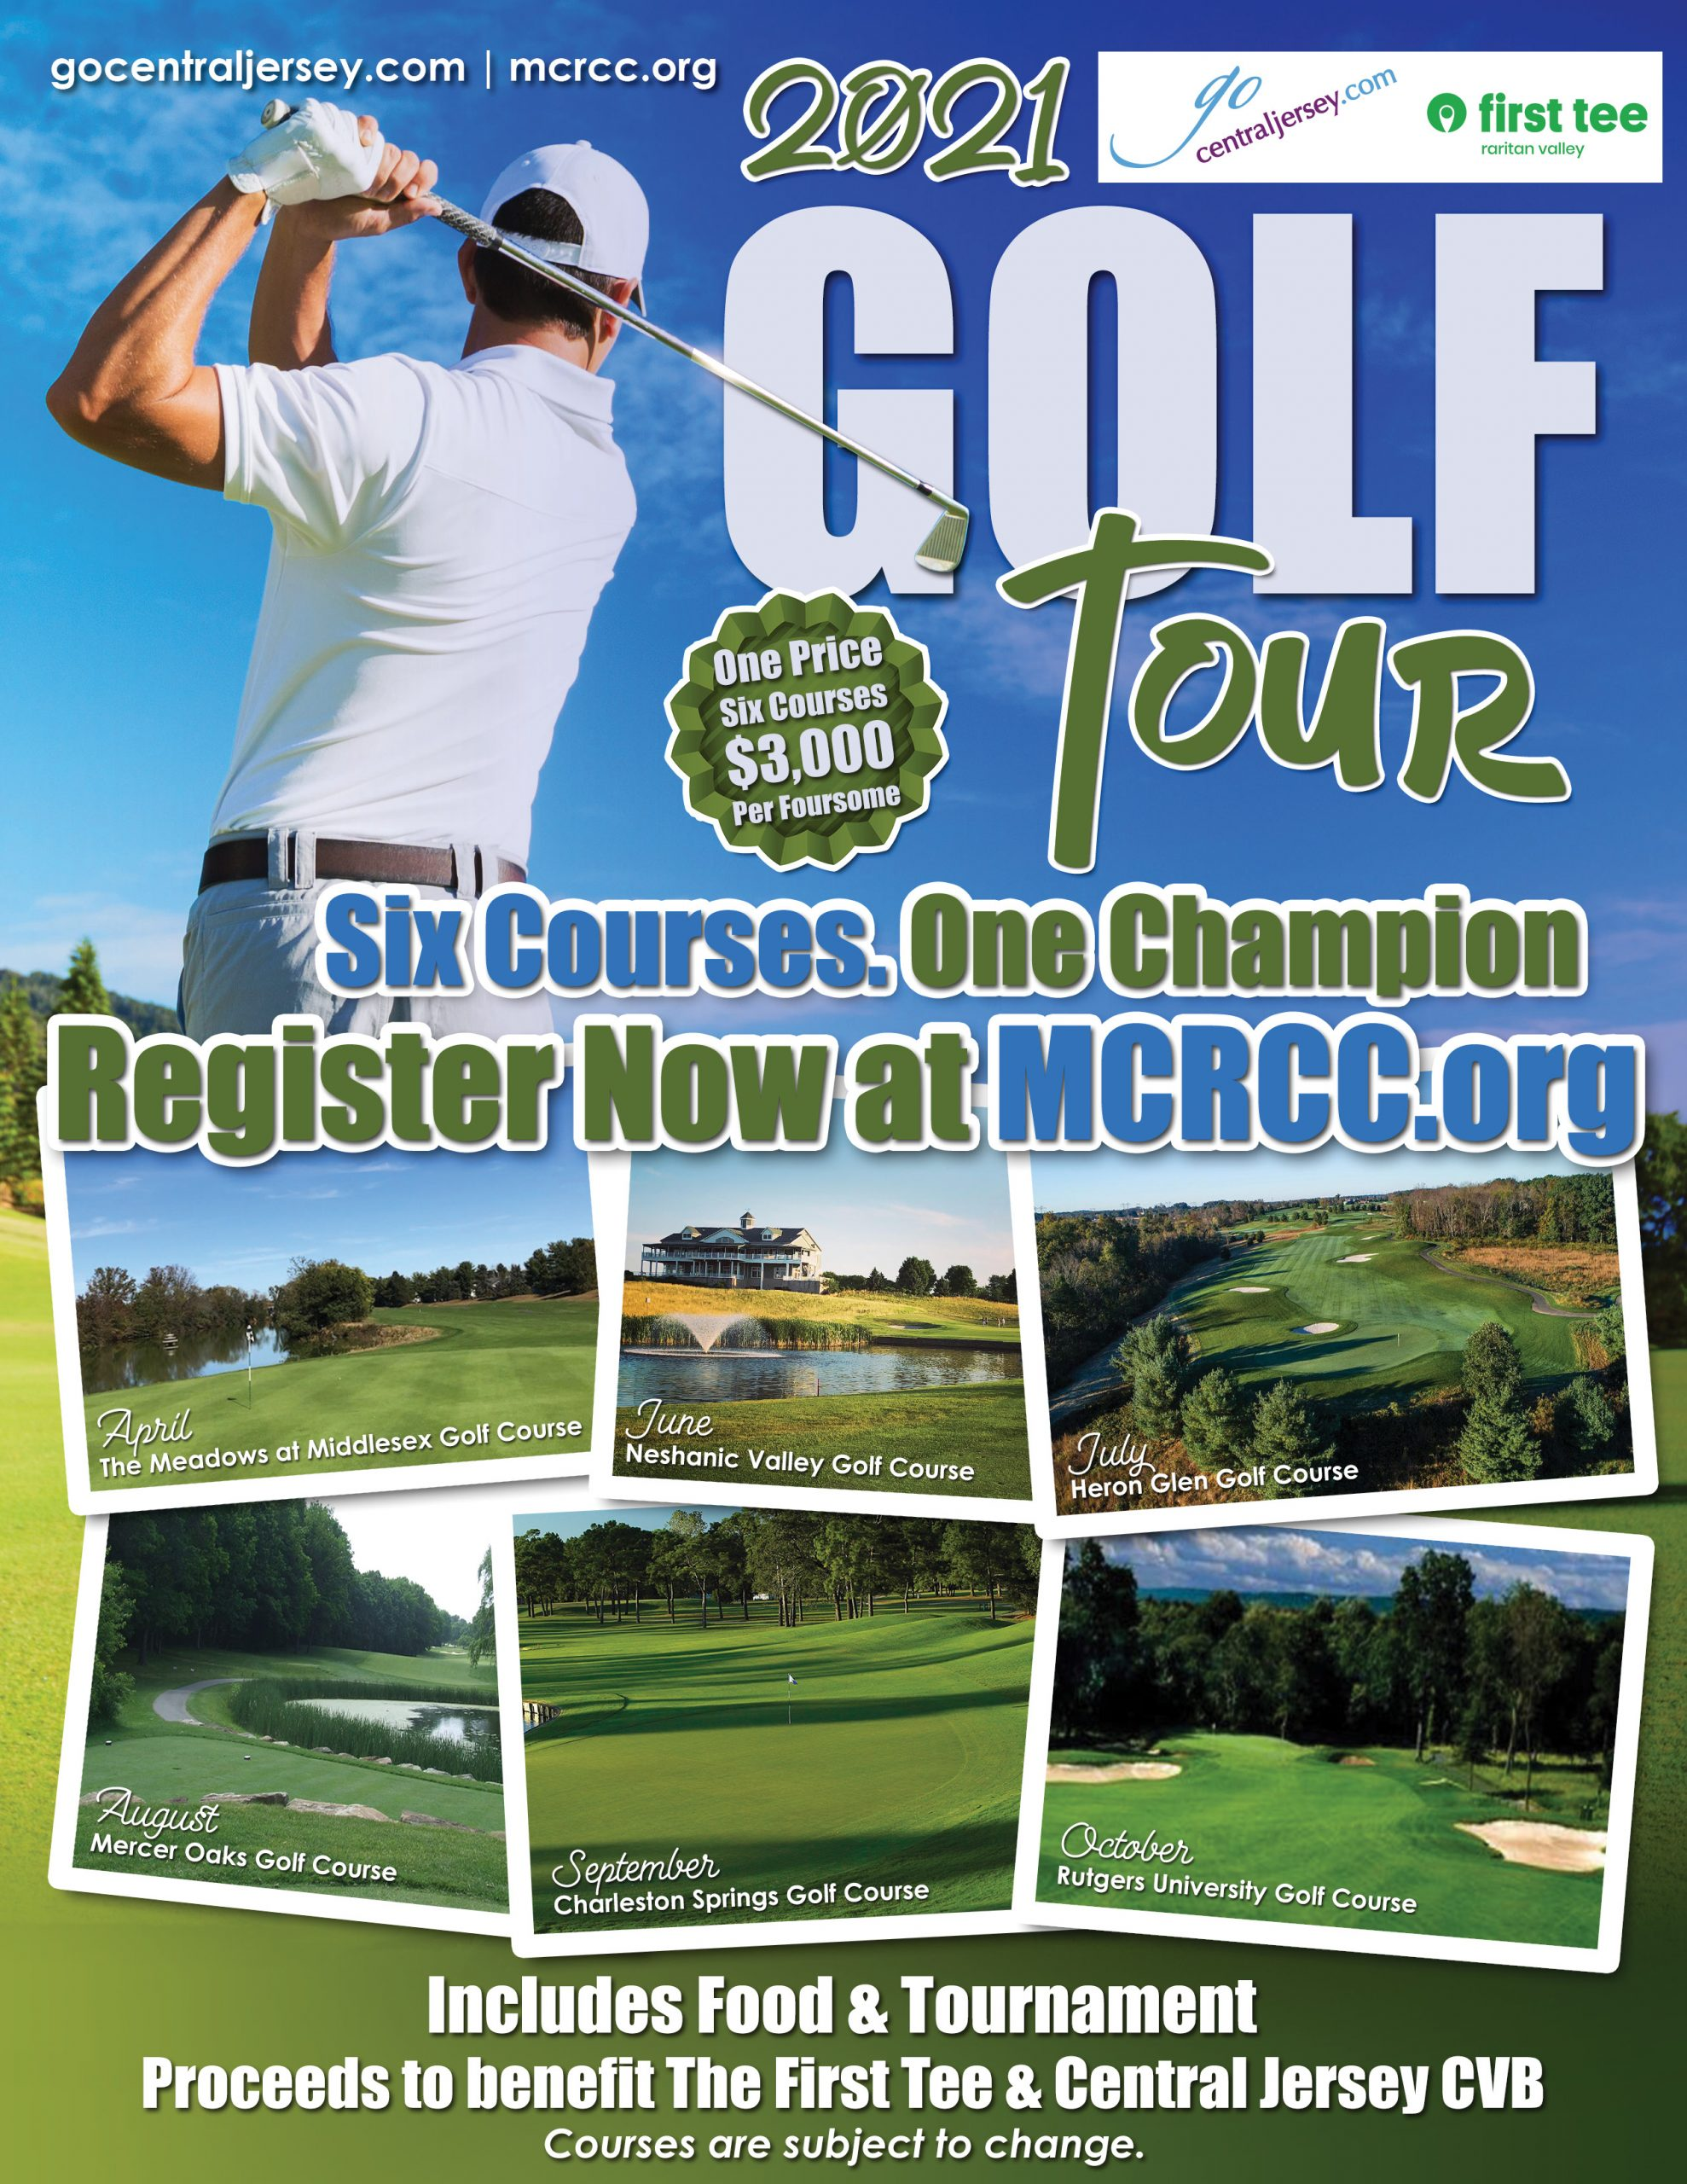 2021 golf tour advertisement for Central Jersey CVB